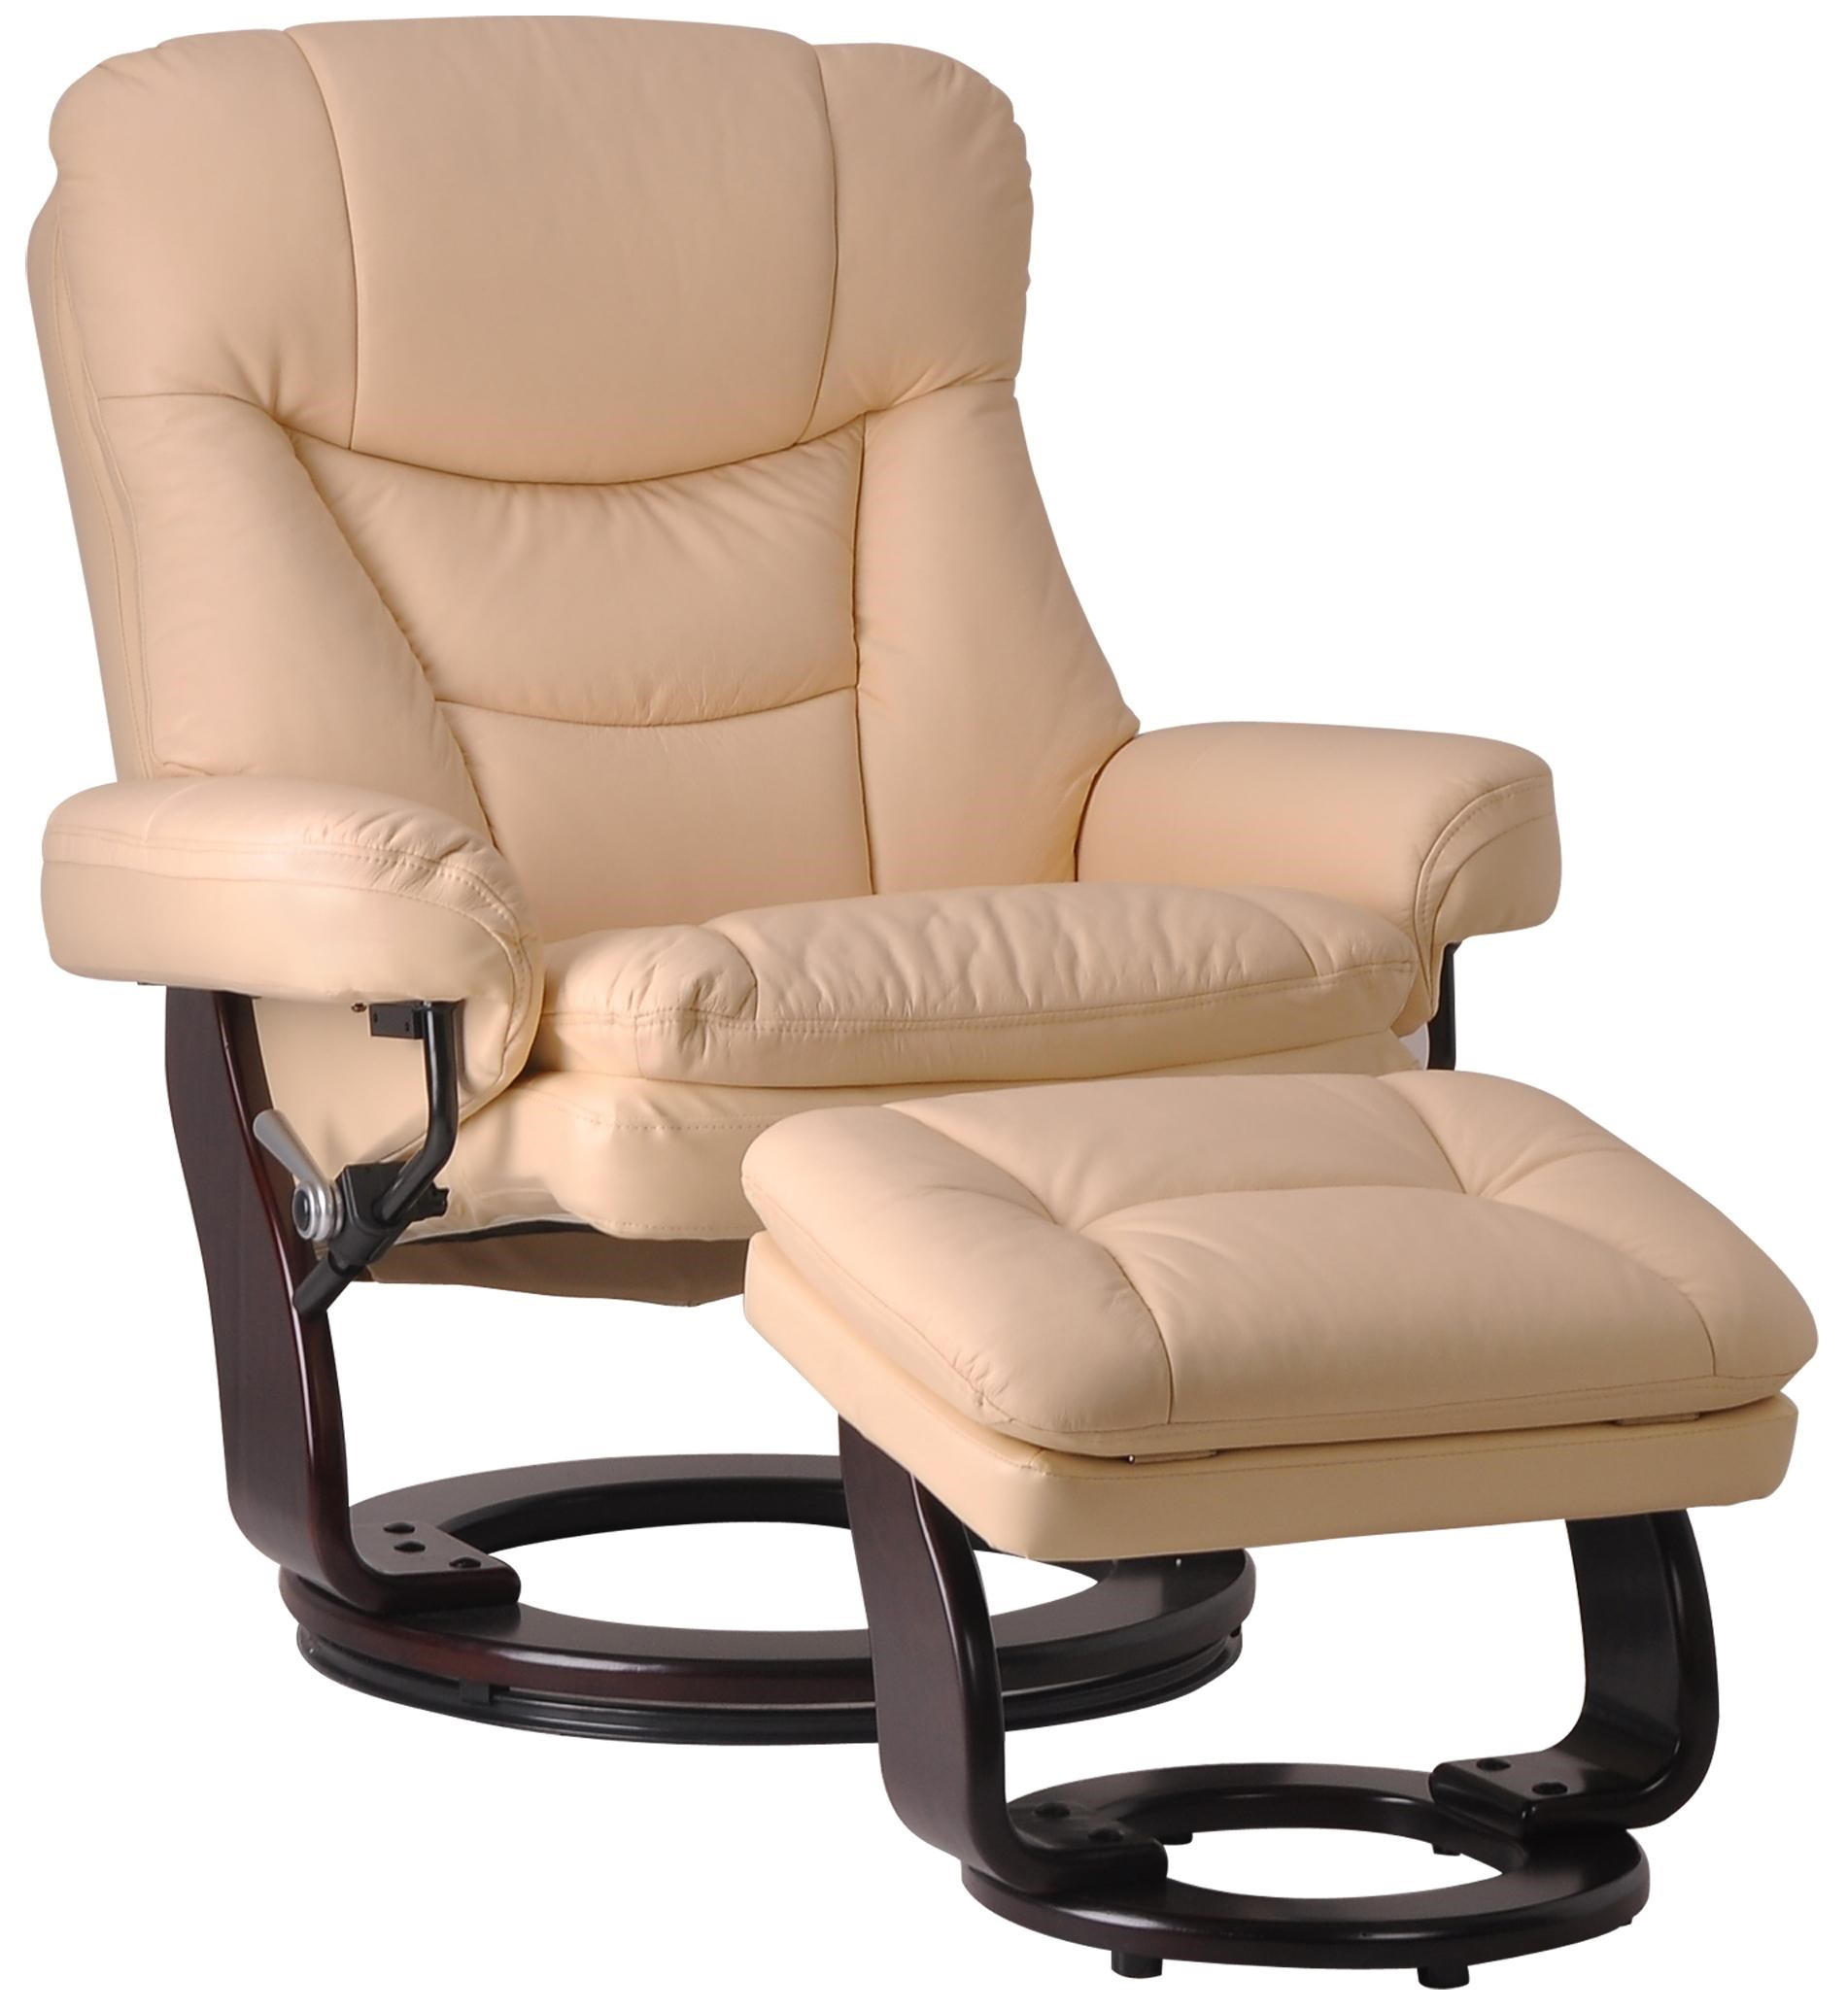 Benchmaster Palermo Casual Contemporary Reclining Chair And Ottoman